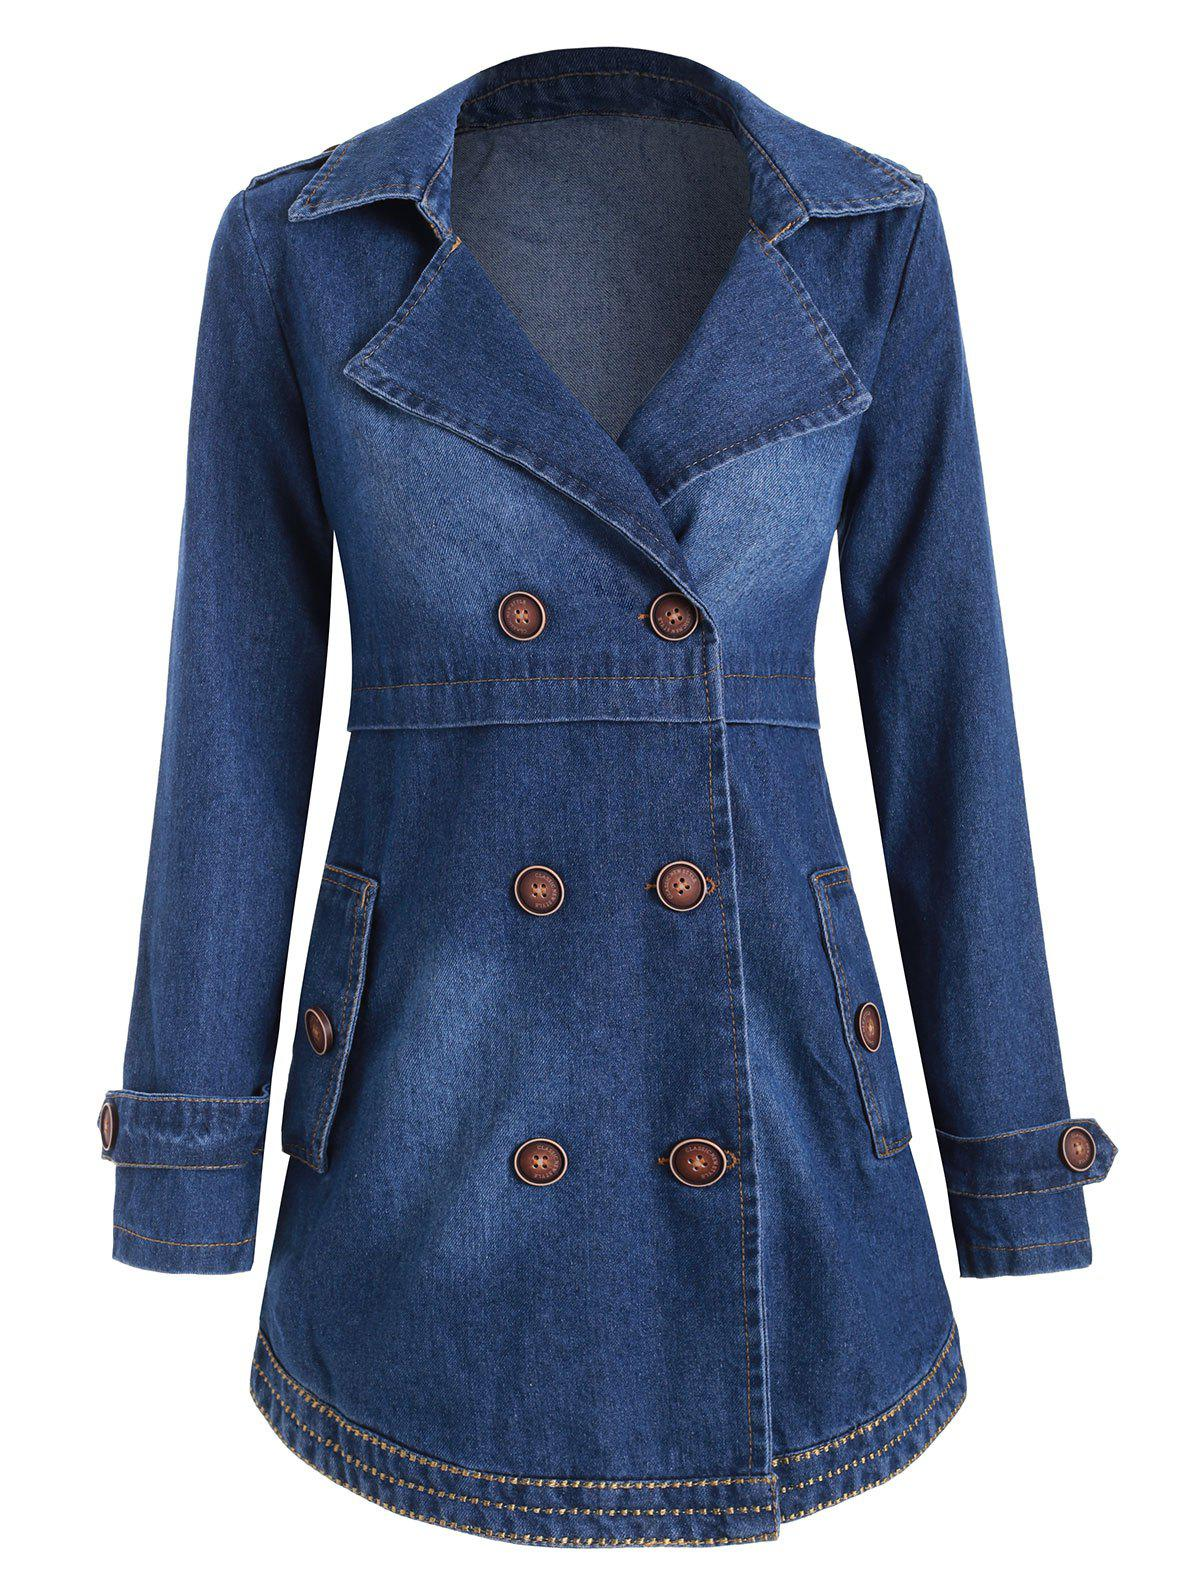 Store Buttons Embellished Lapel Denim Coat with Pockets